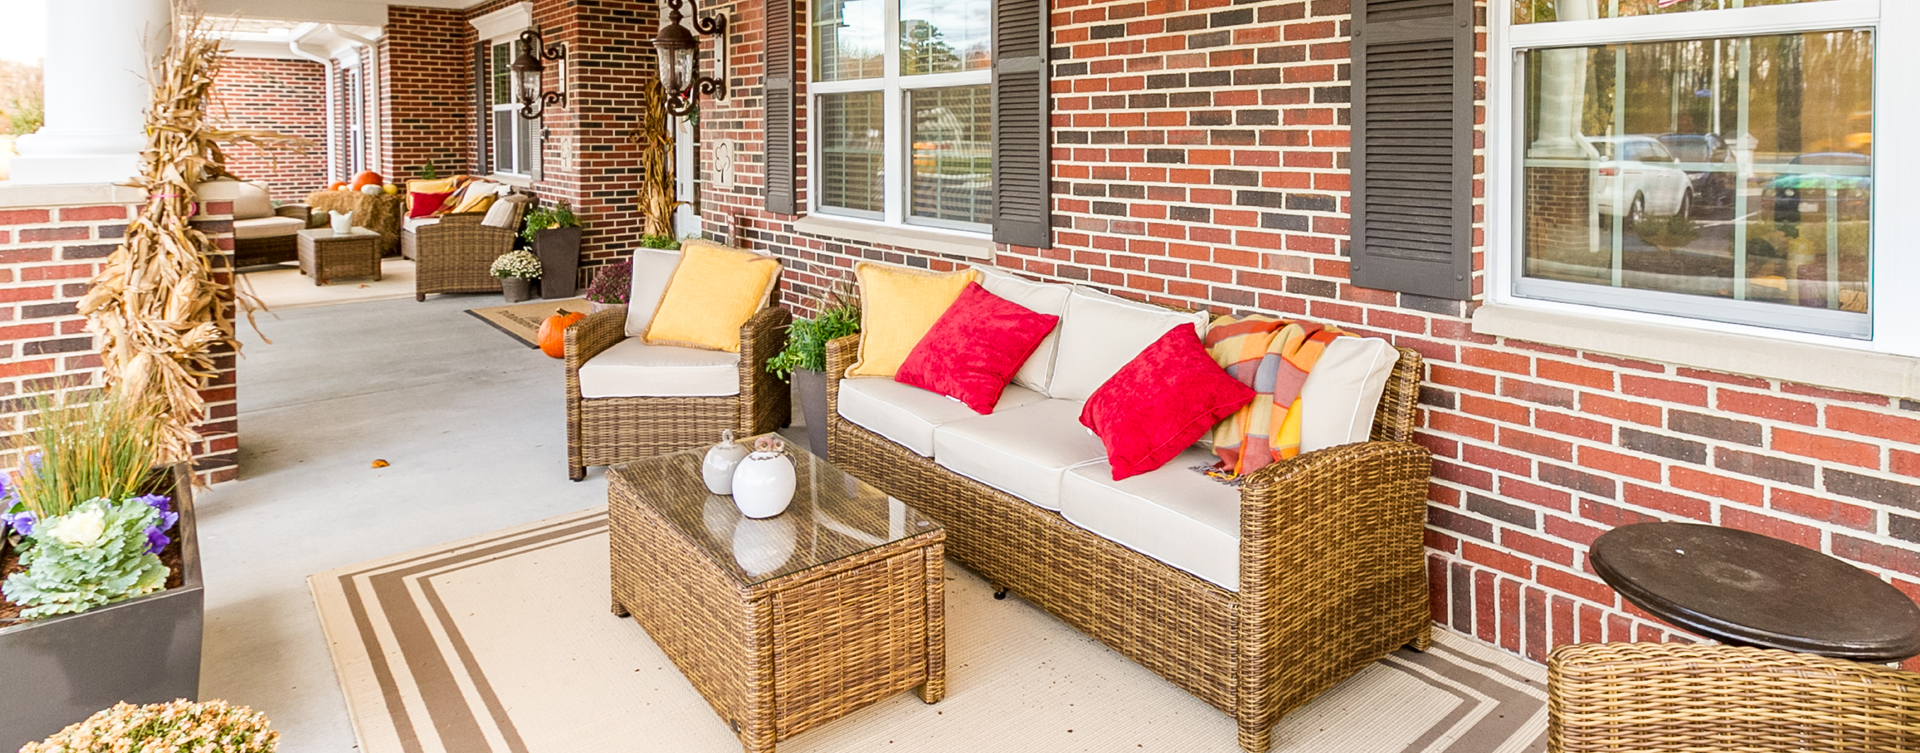 Enjoy conversations with friends on the porch at Bickford of Virginia Beach